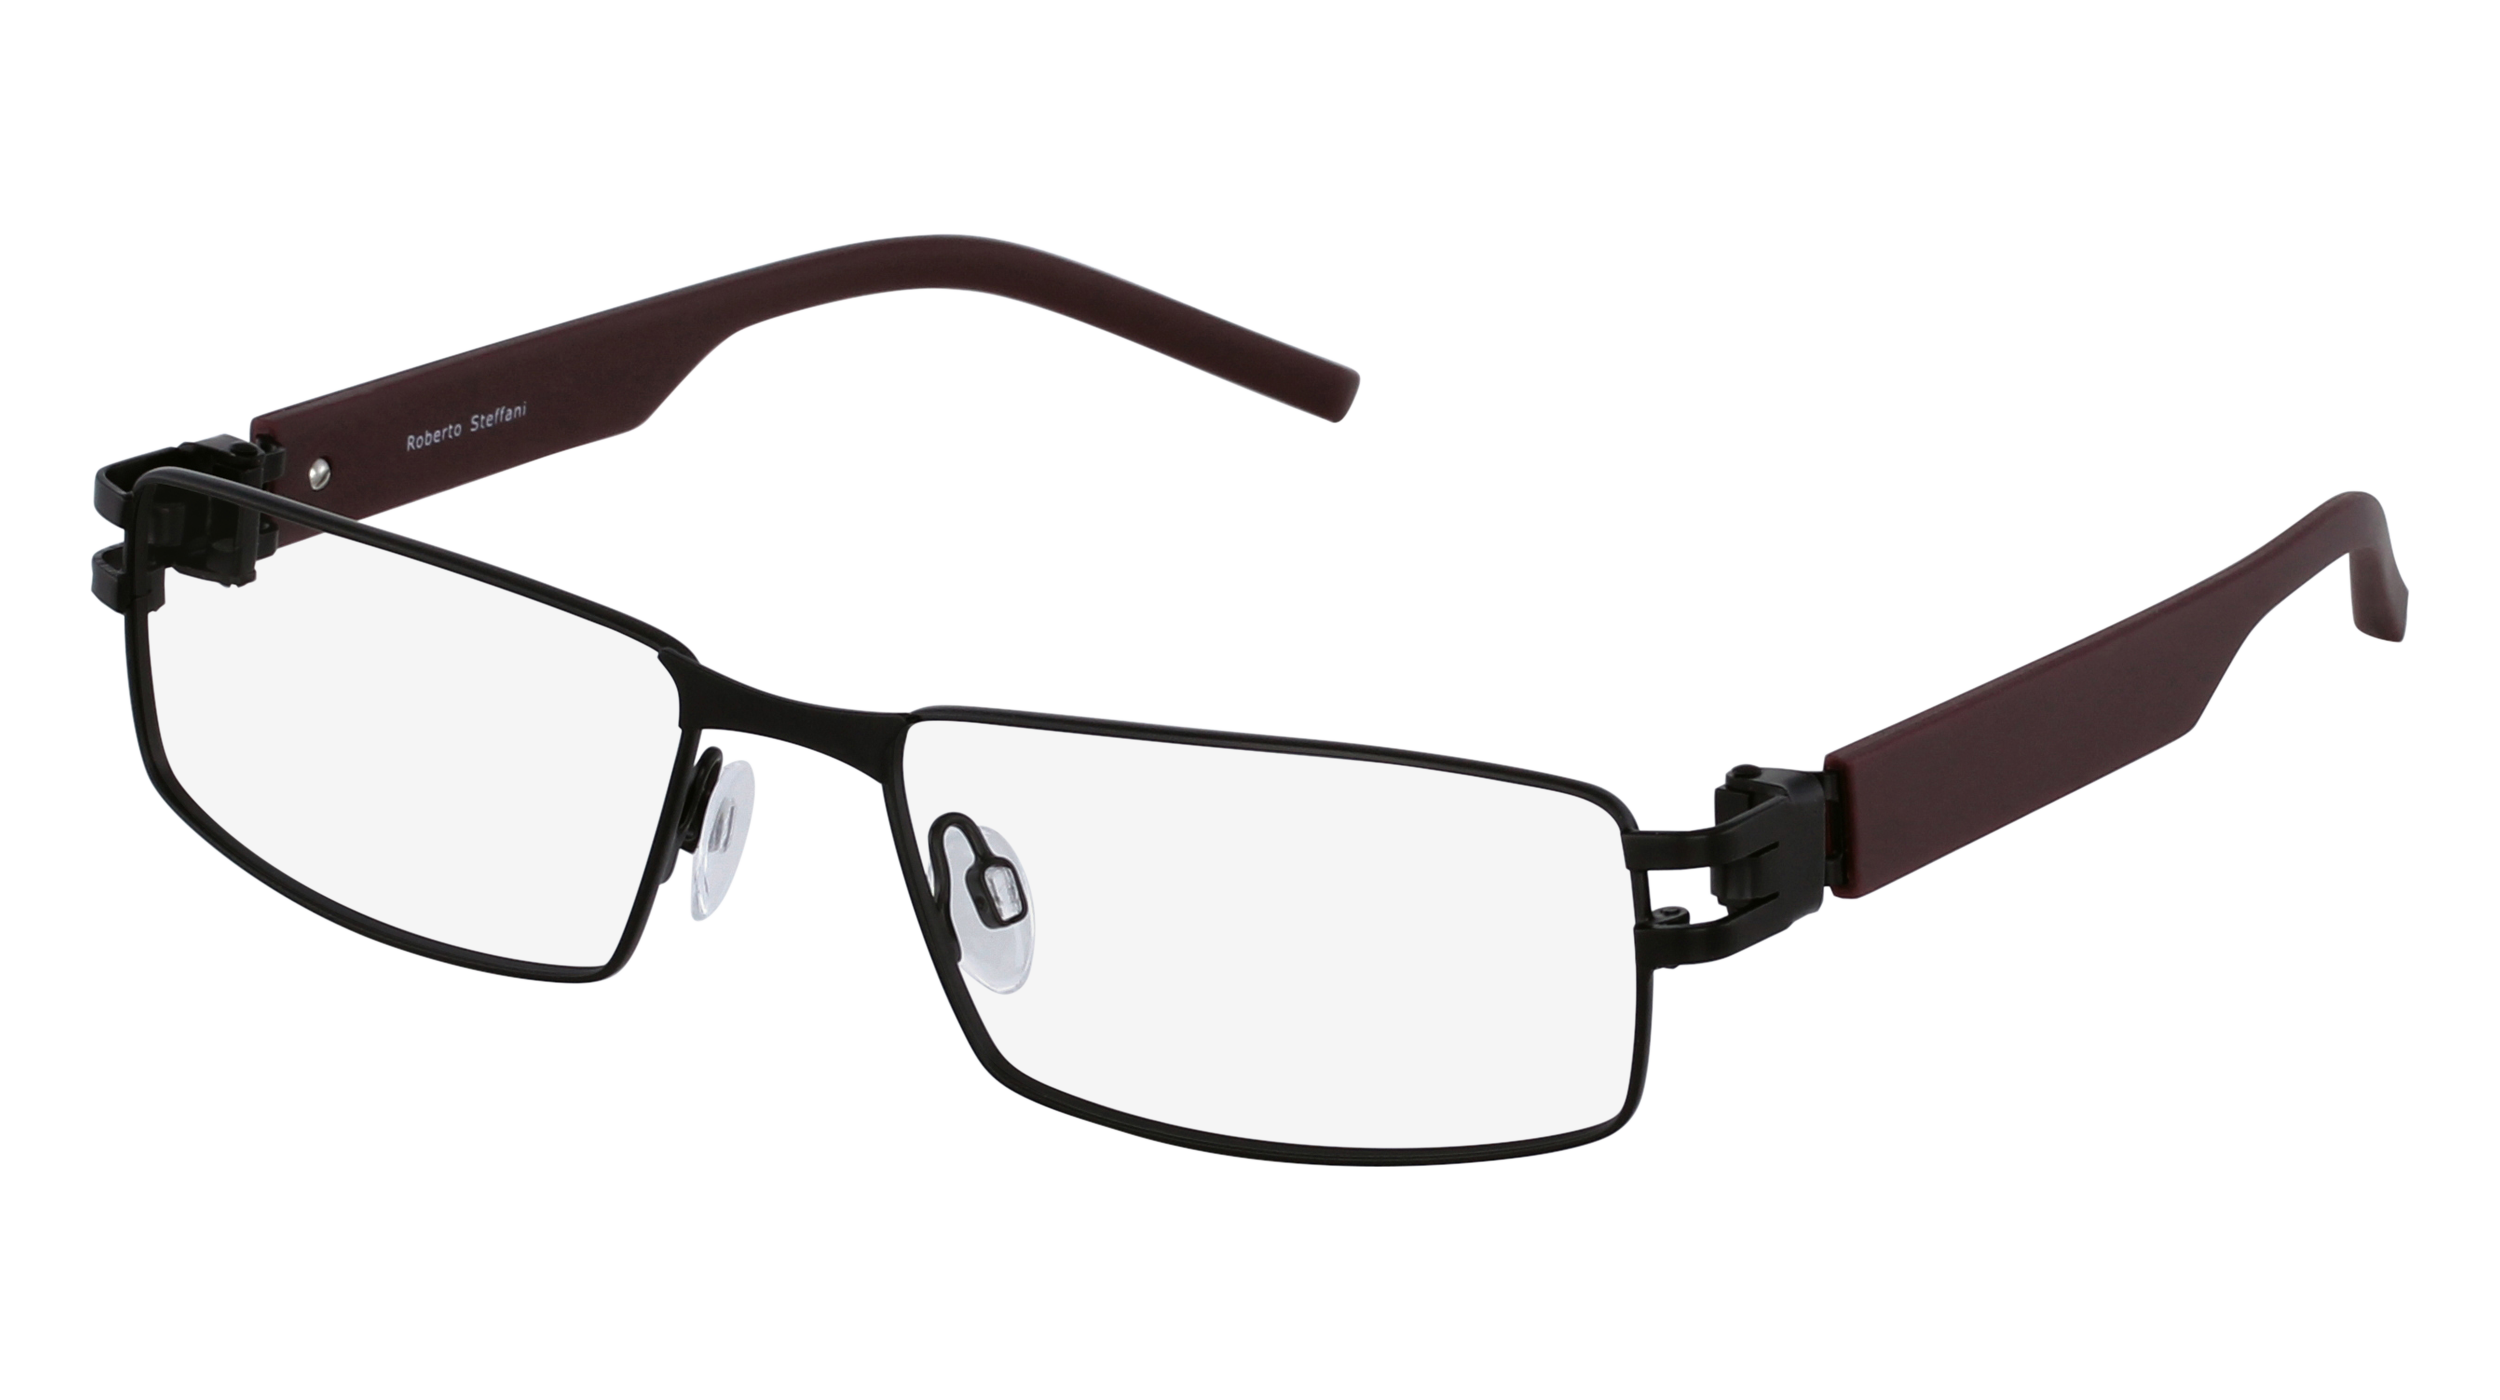 RS 125 - JCPenney Optical